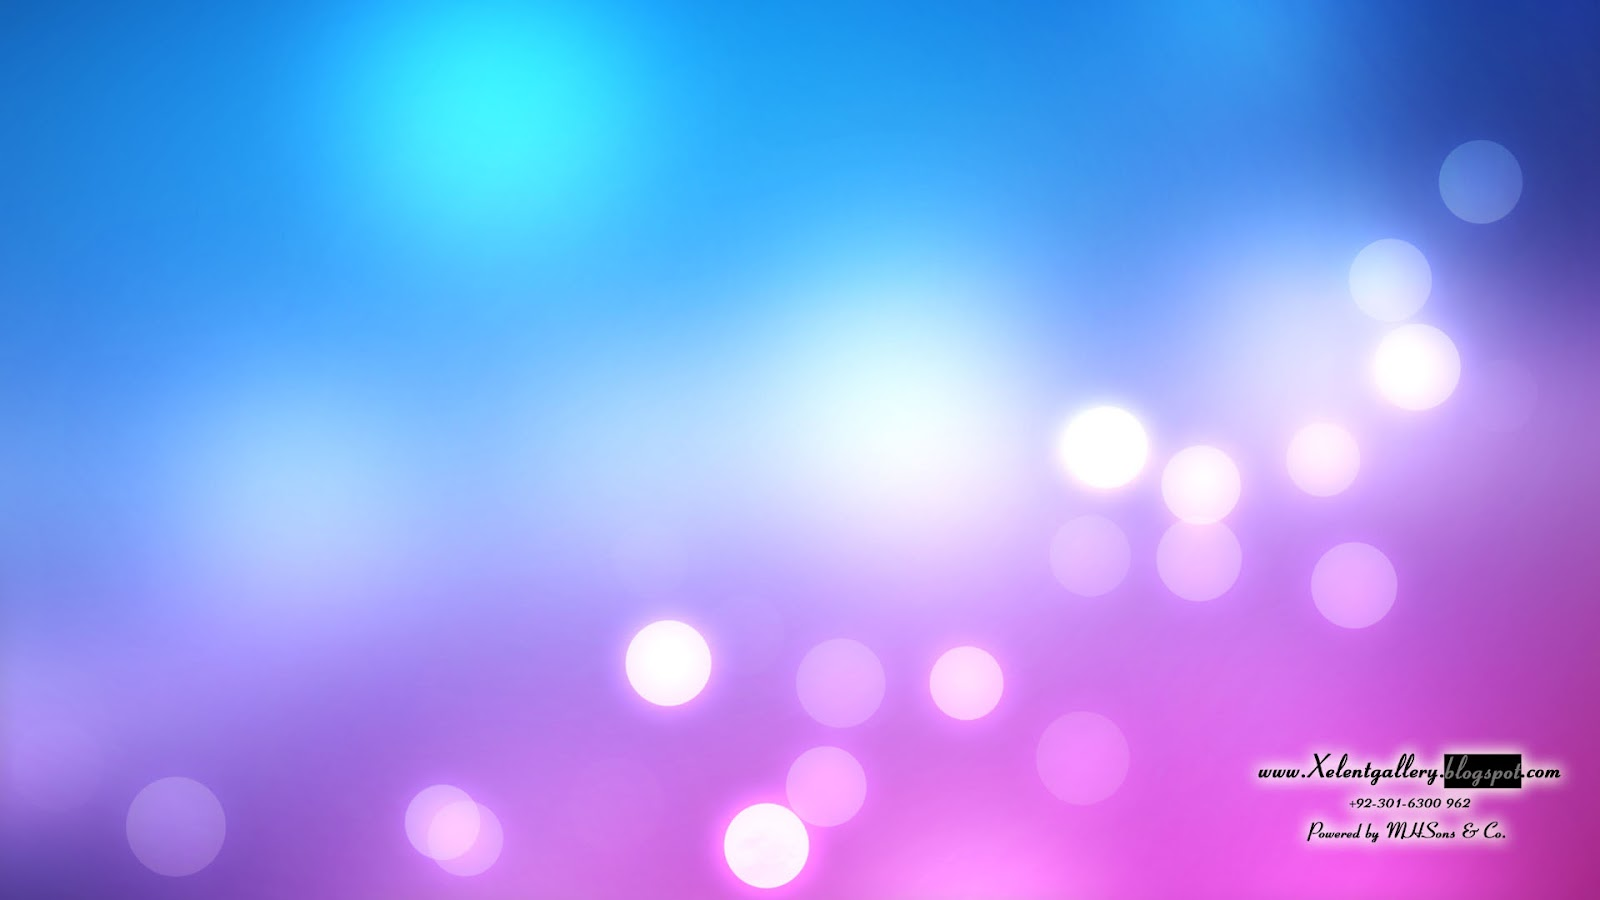 wallpapers for hdtv - photo #35